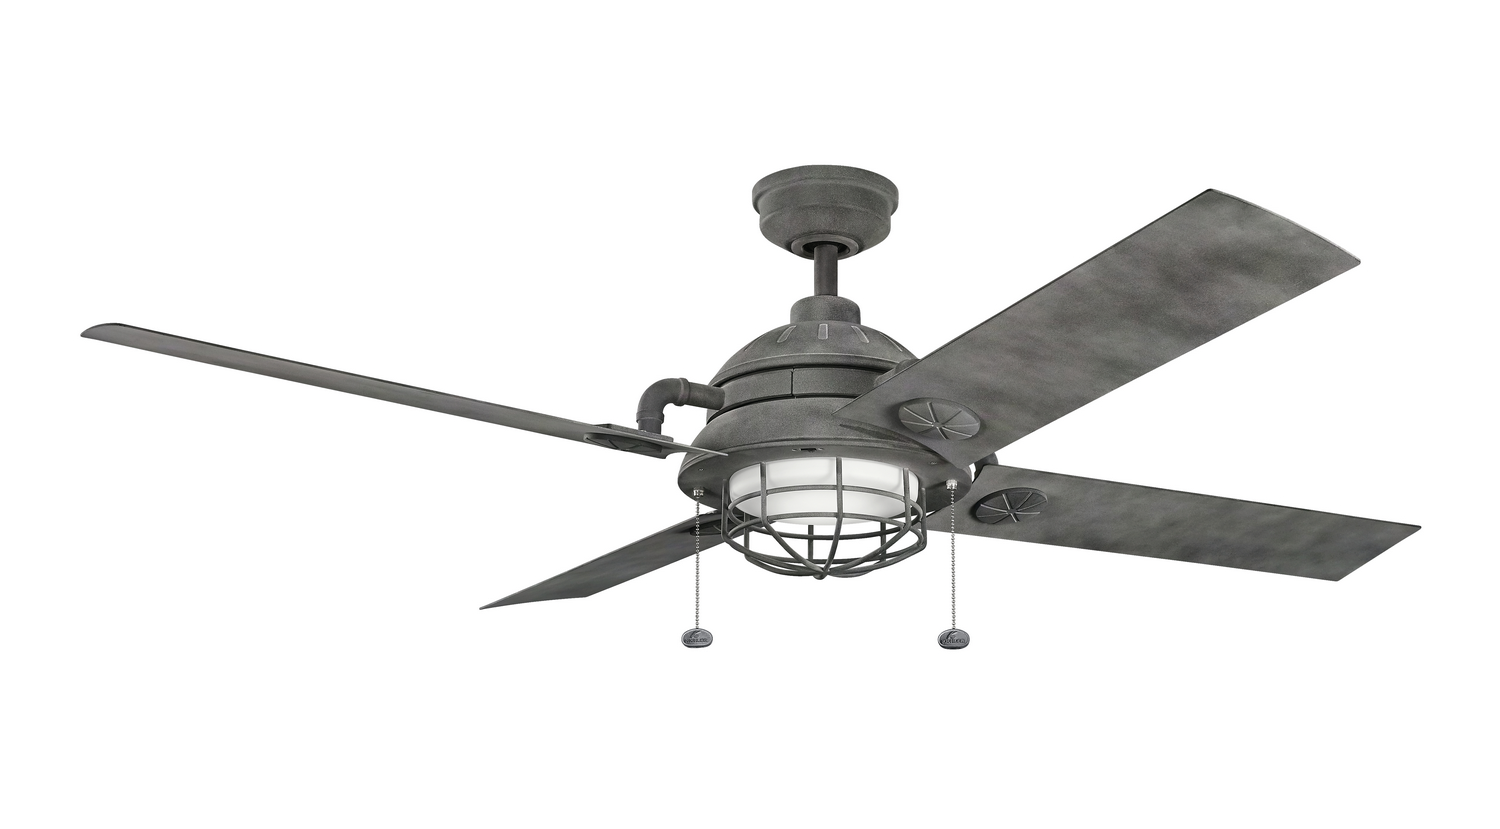 65 inchCeiling Fan from the Maor collection by Kichler 310136WZC